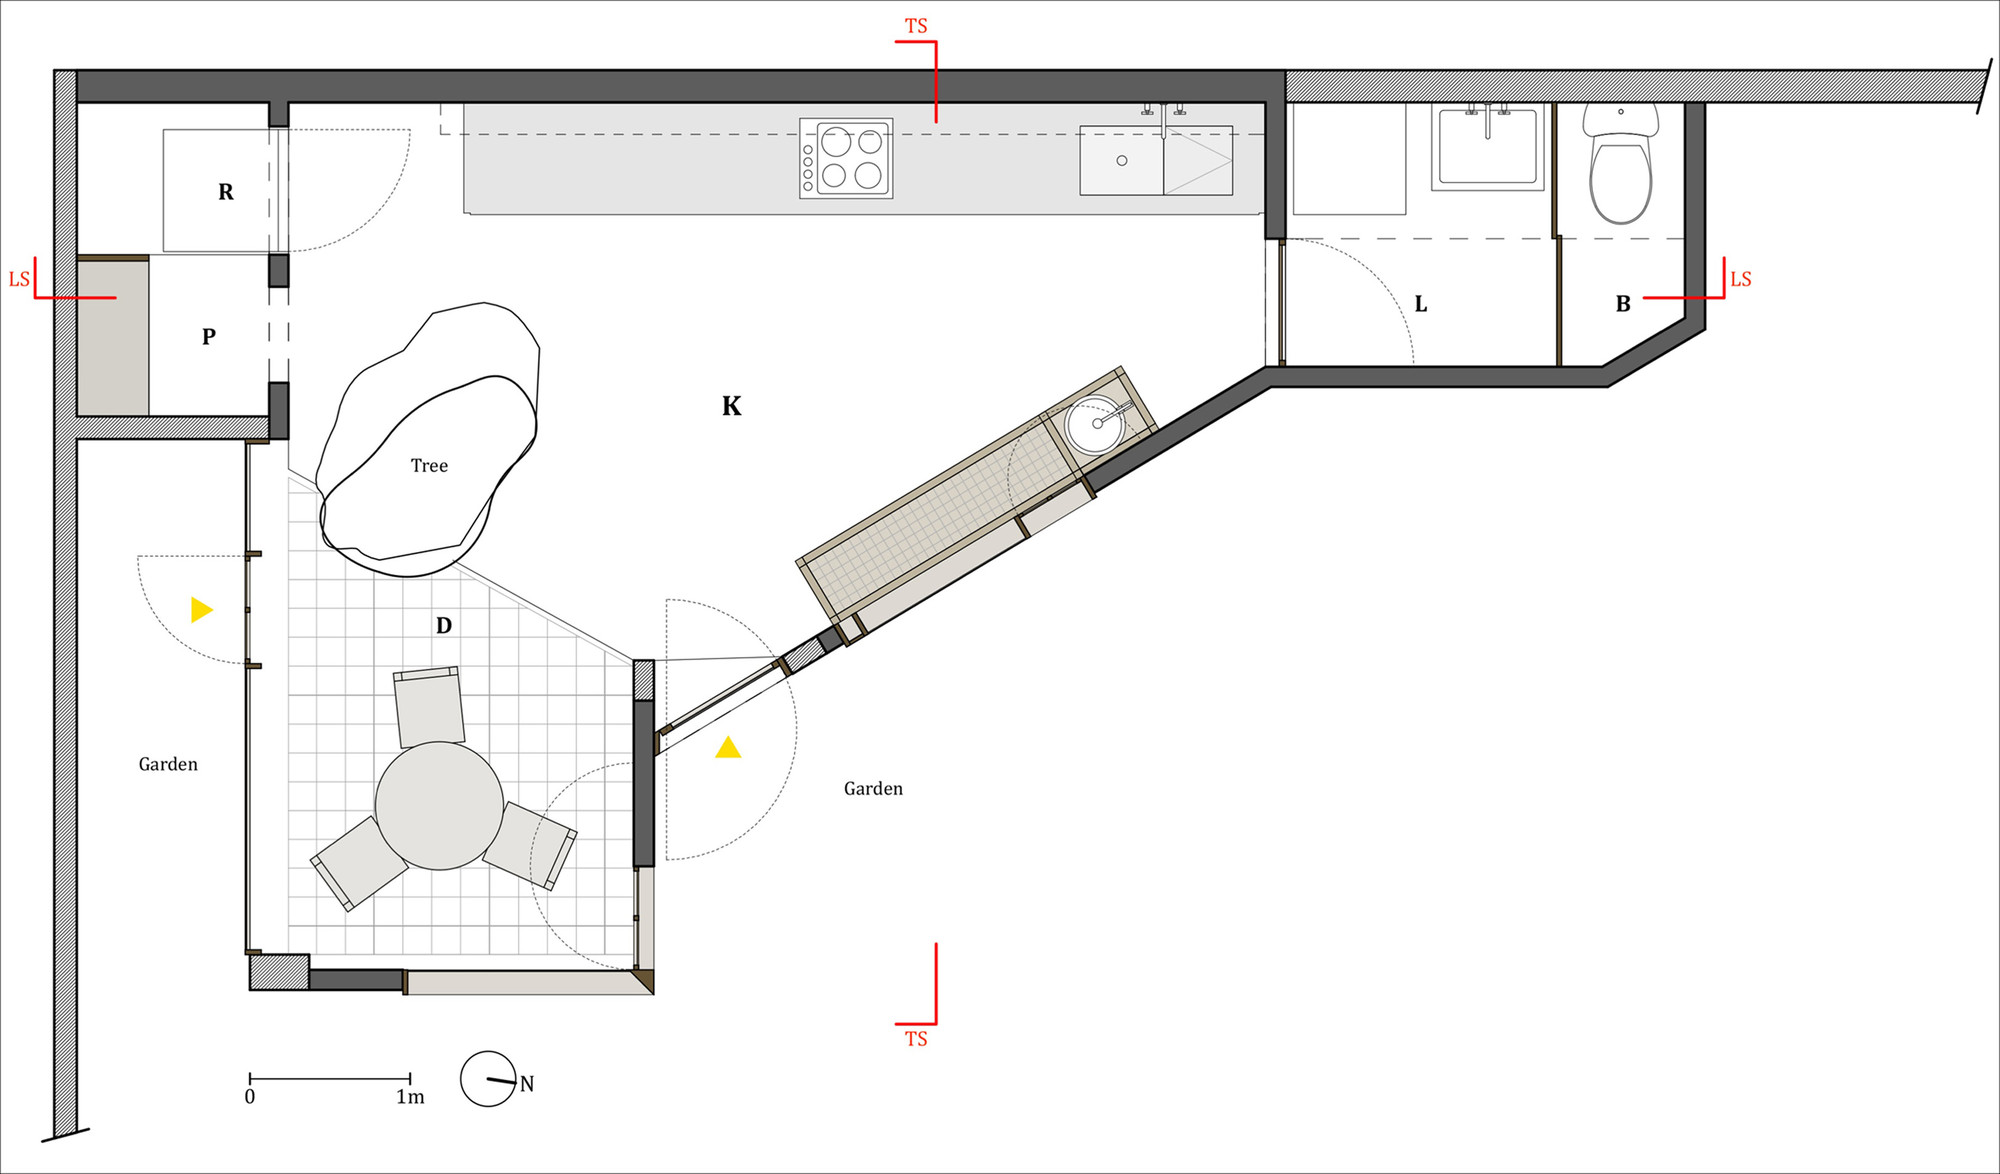 Kitchen in lima ghezzi novak archdaily for Planning a new kitchen